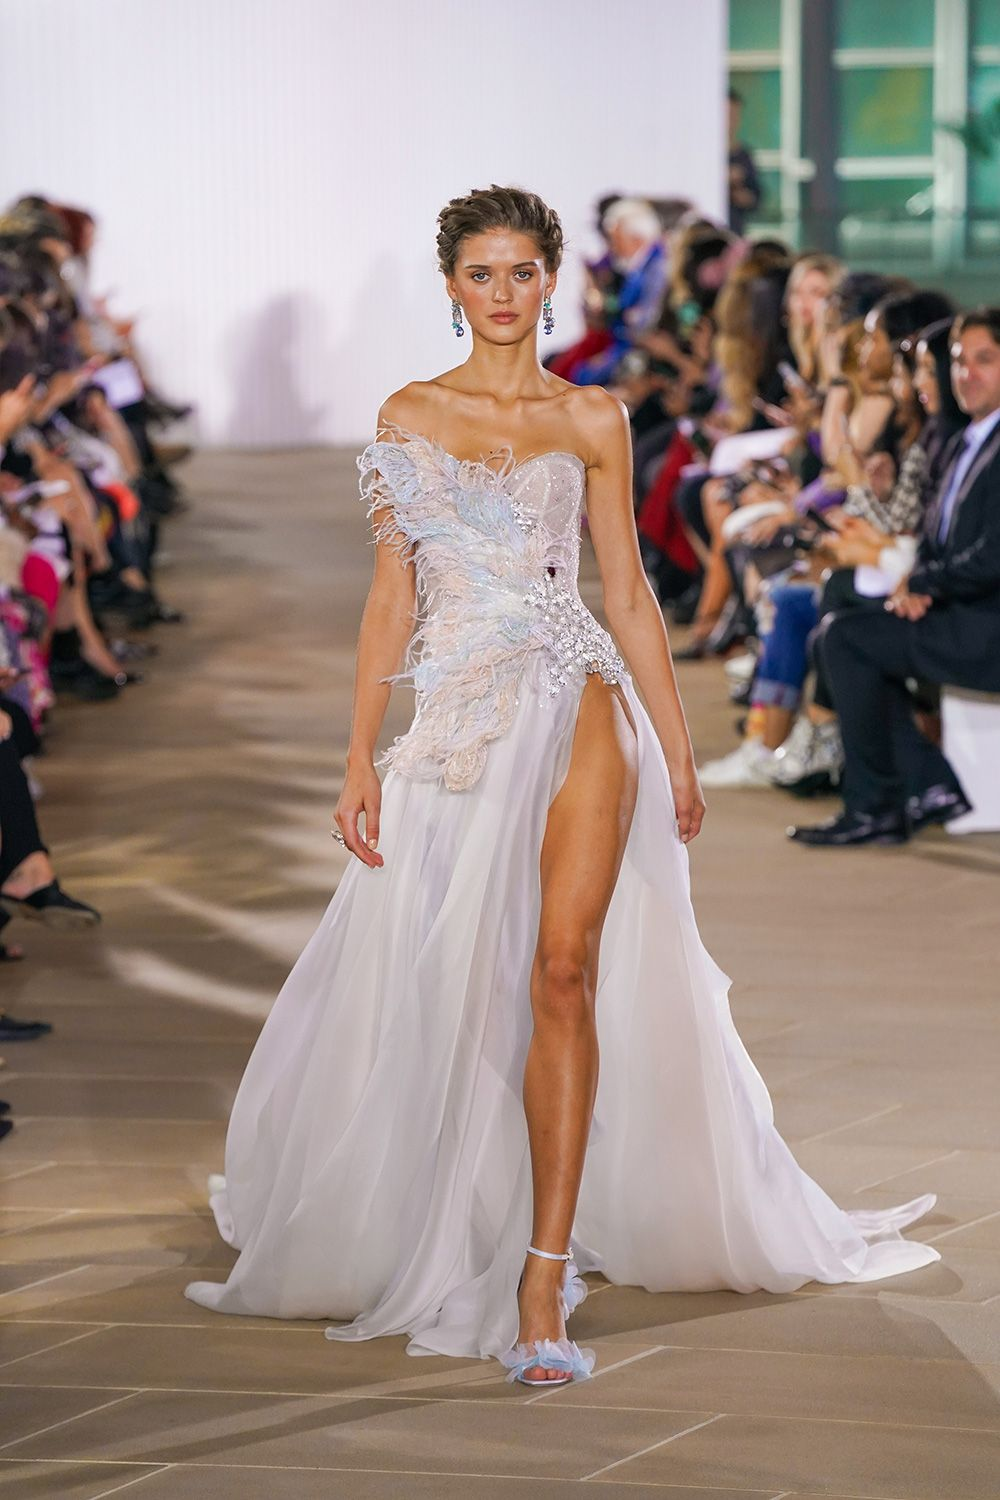 Top 8 Chic 2020 Wedding Dress Trends Best formal dresses